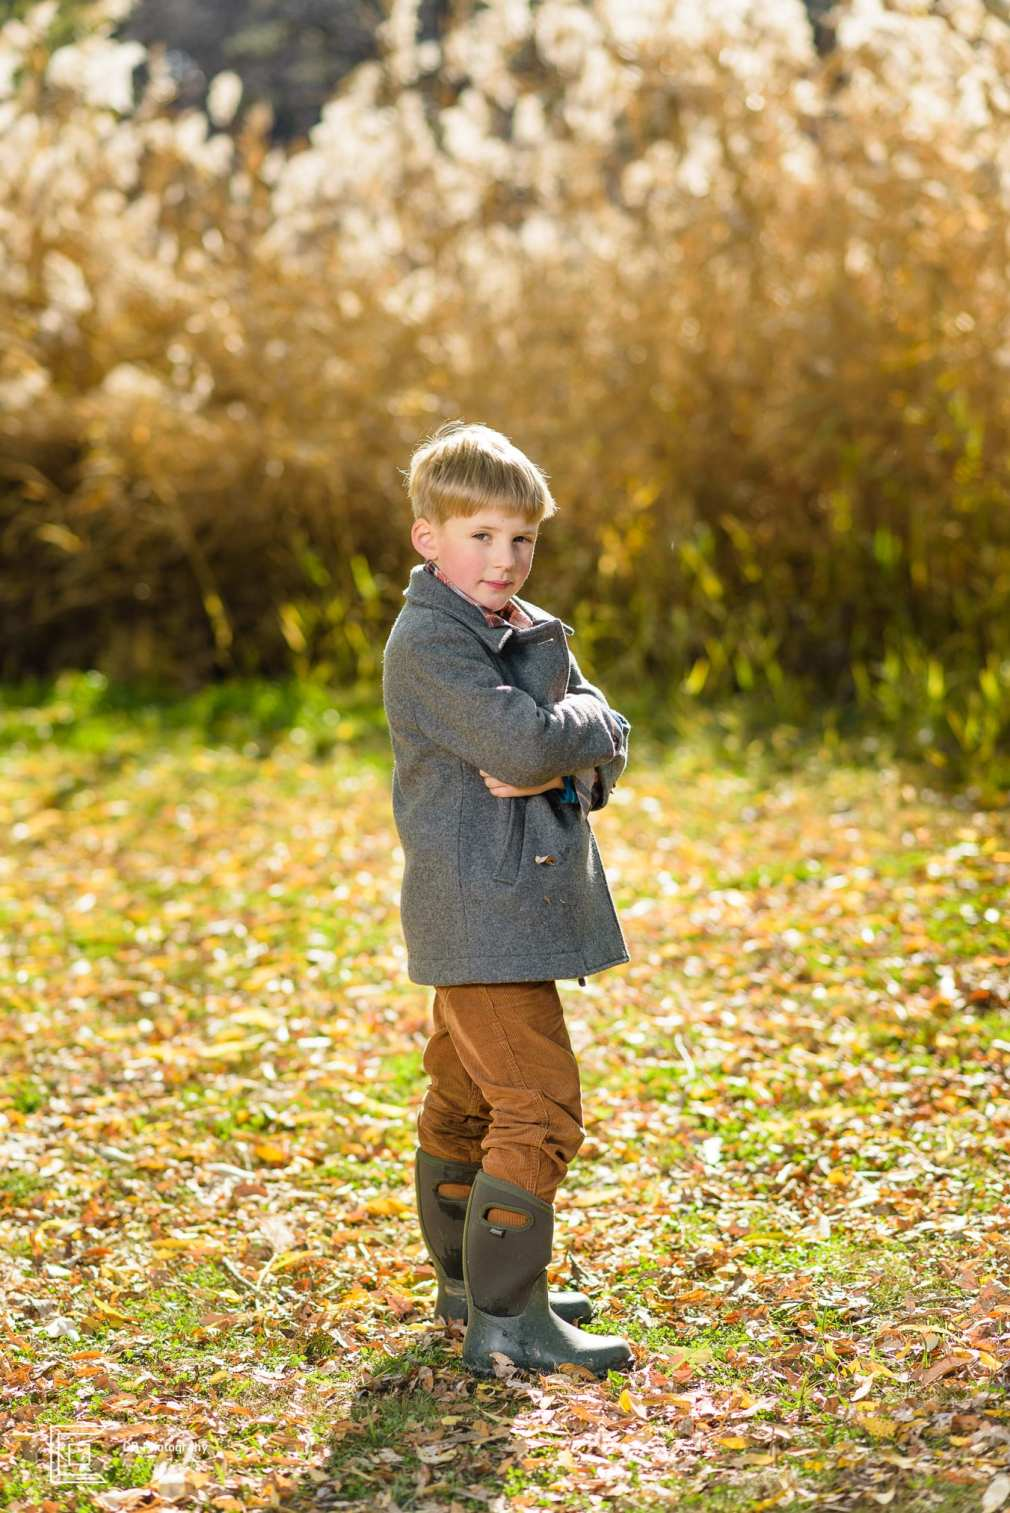 Boy portrait taken during a family shoot by the Tokyo photographer Cristian Bucur